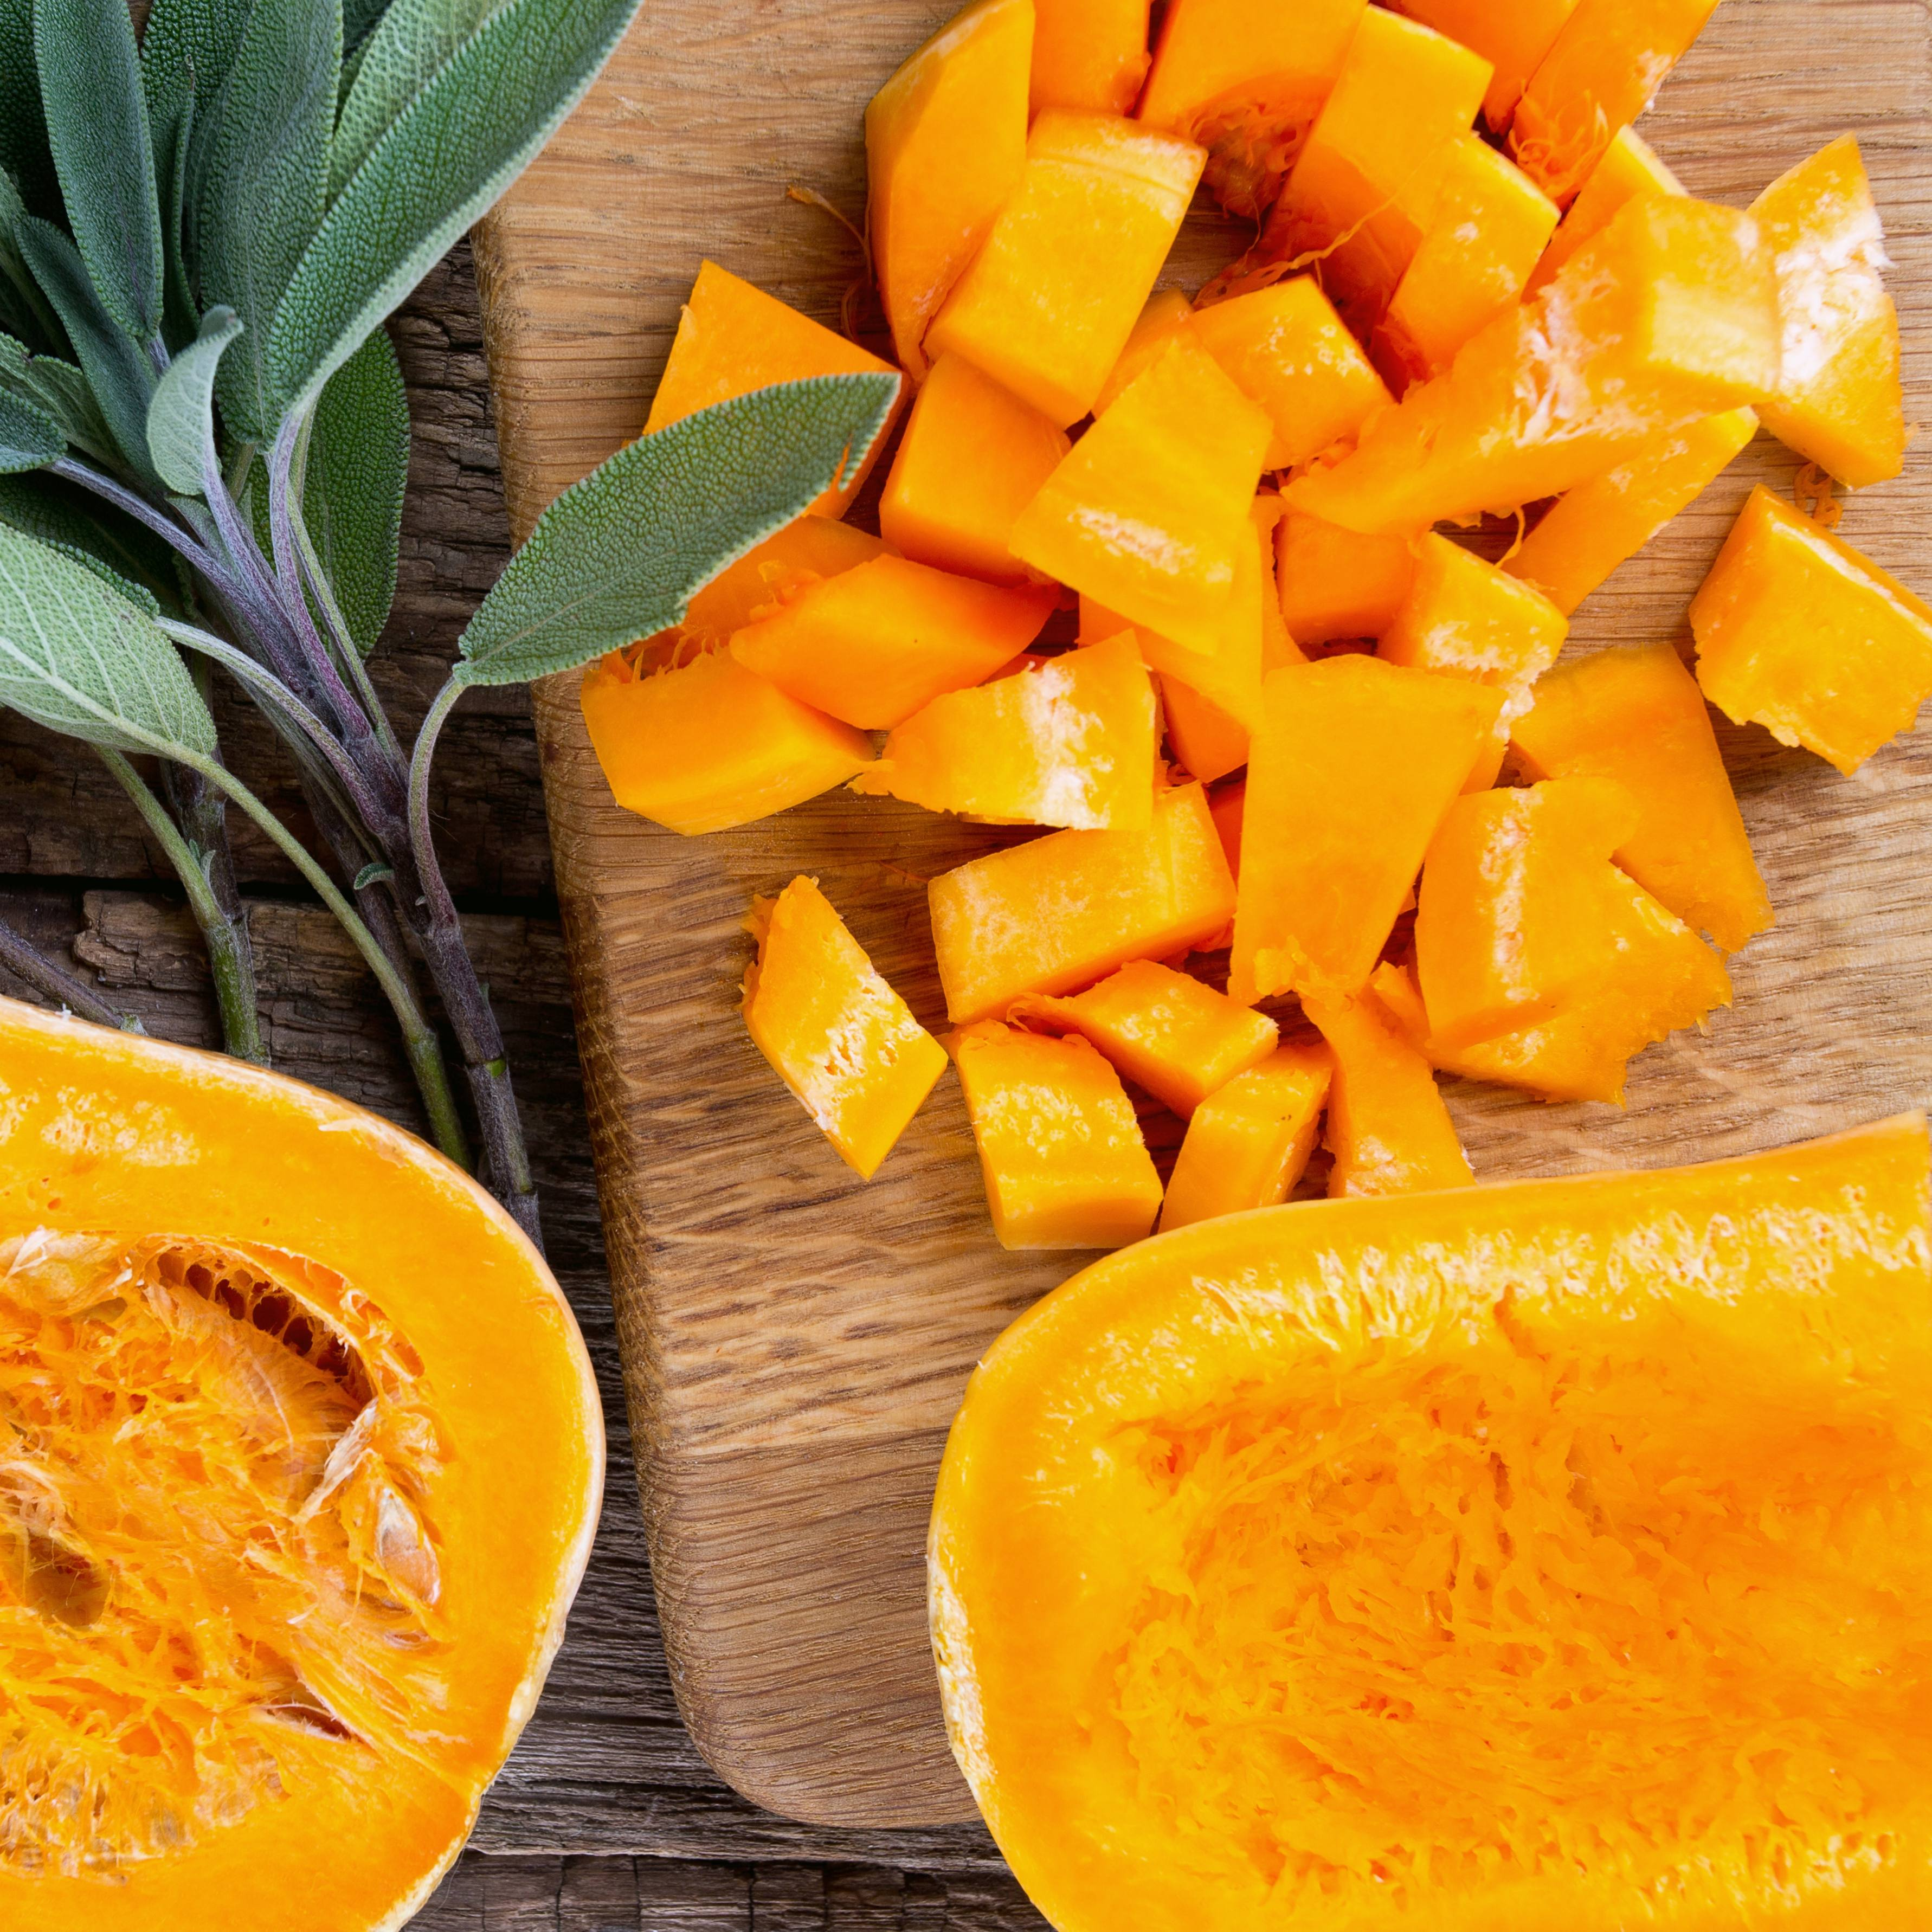 sliced, diced and cut up butternut squash on a wooden kitchen board, fresh vegetable